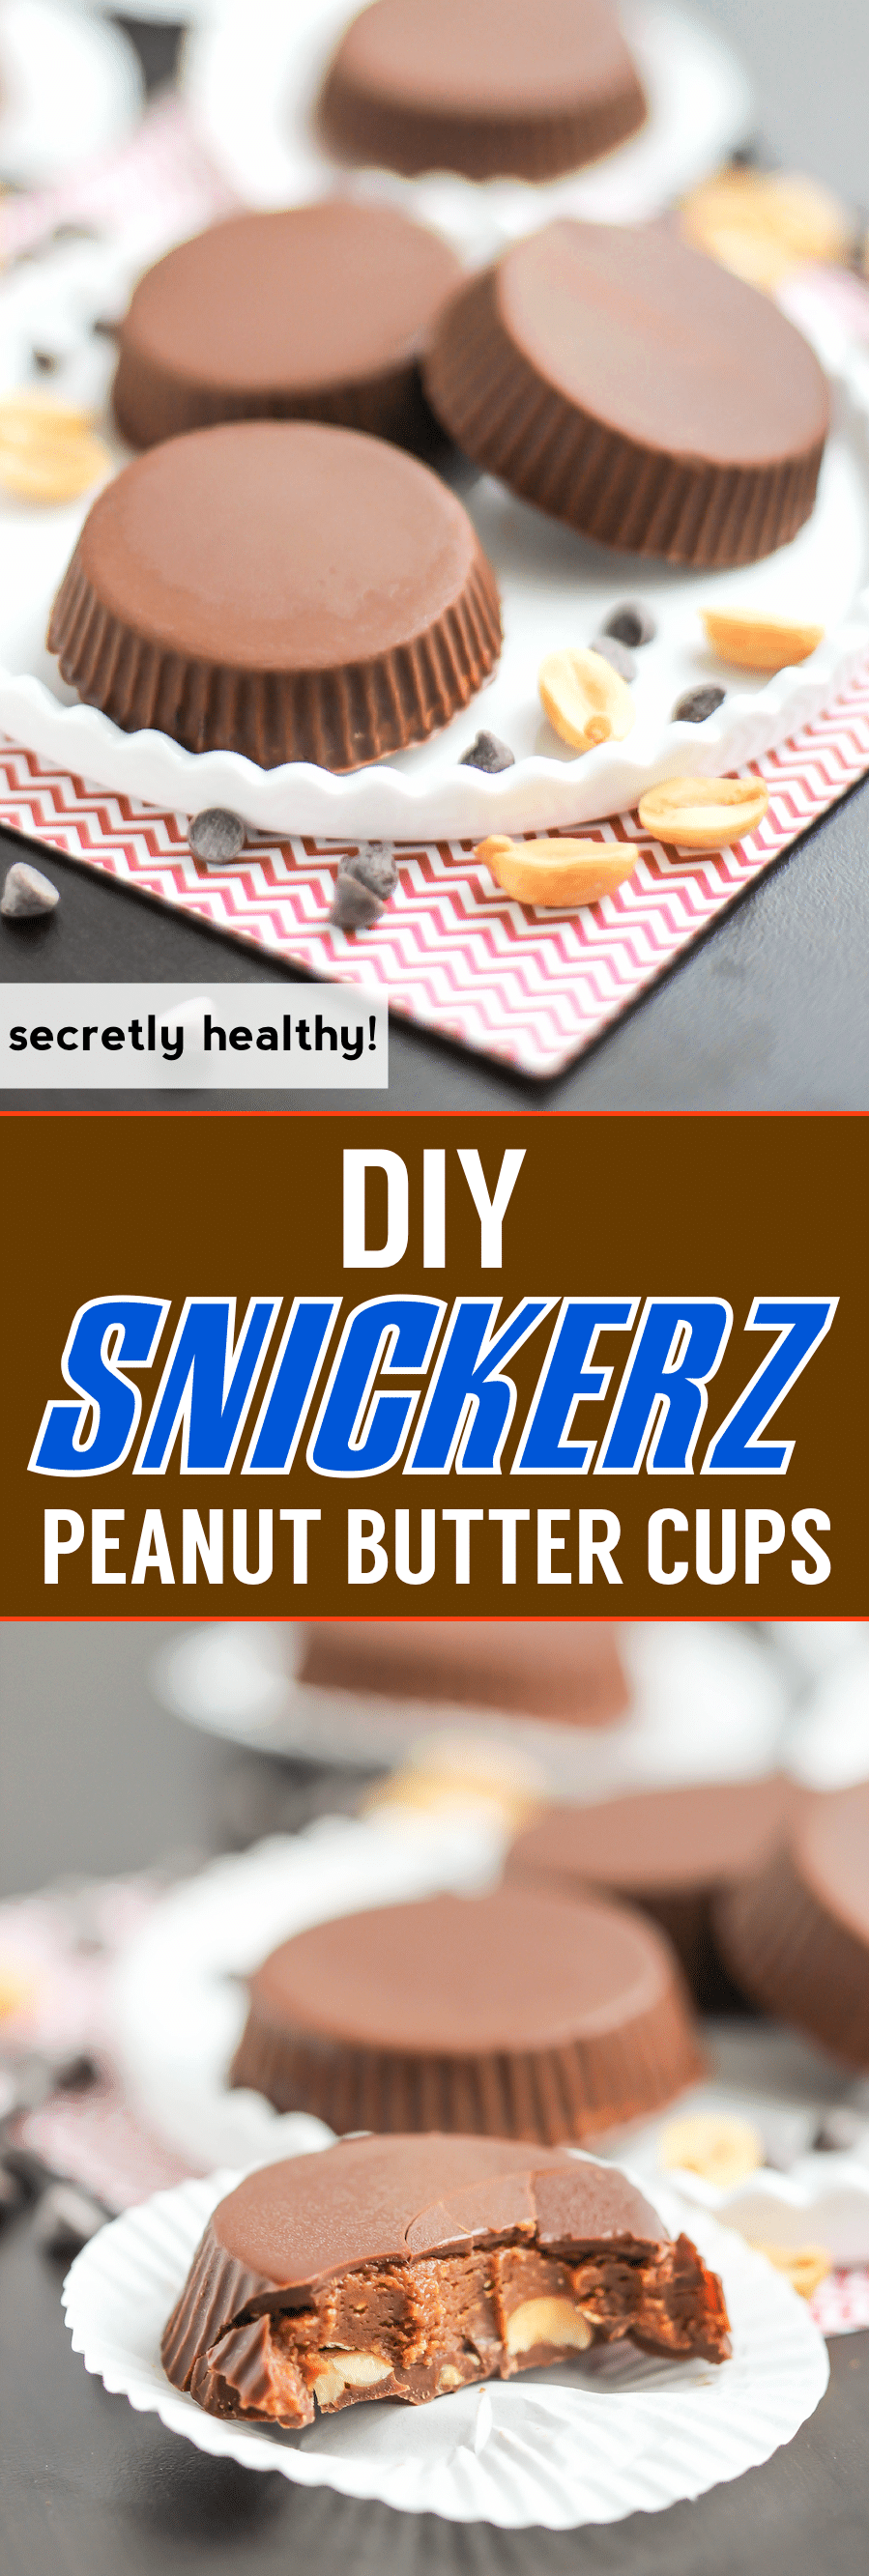 Like Reese's peanut butter cups? Then you'll LOVE these healthy, yet deliciously addictive, Snickerz Candy Cups filled with peanut butter, caramel, and chocolate! It's like a Snickers and Reese's morphed into one, and made guilt-free! -- Healthy Dessert Recipes at the Desserts With Benefits Blog